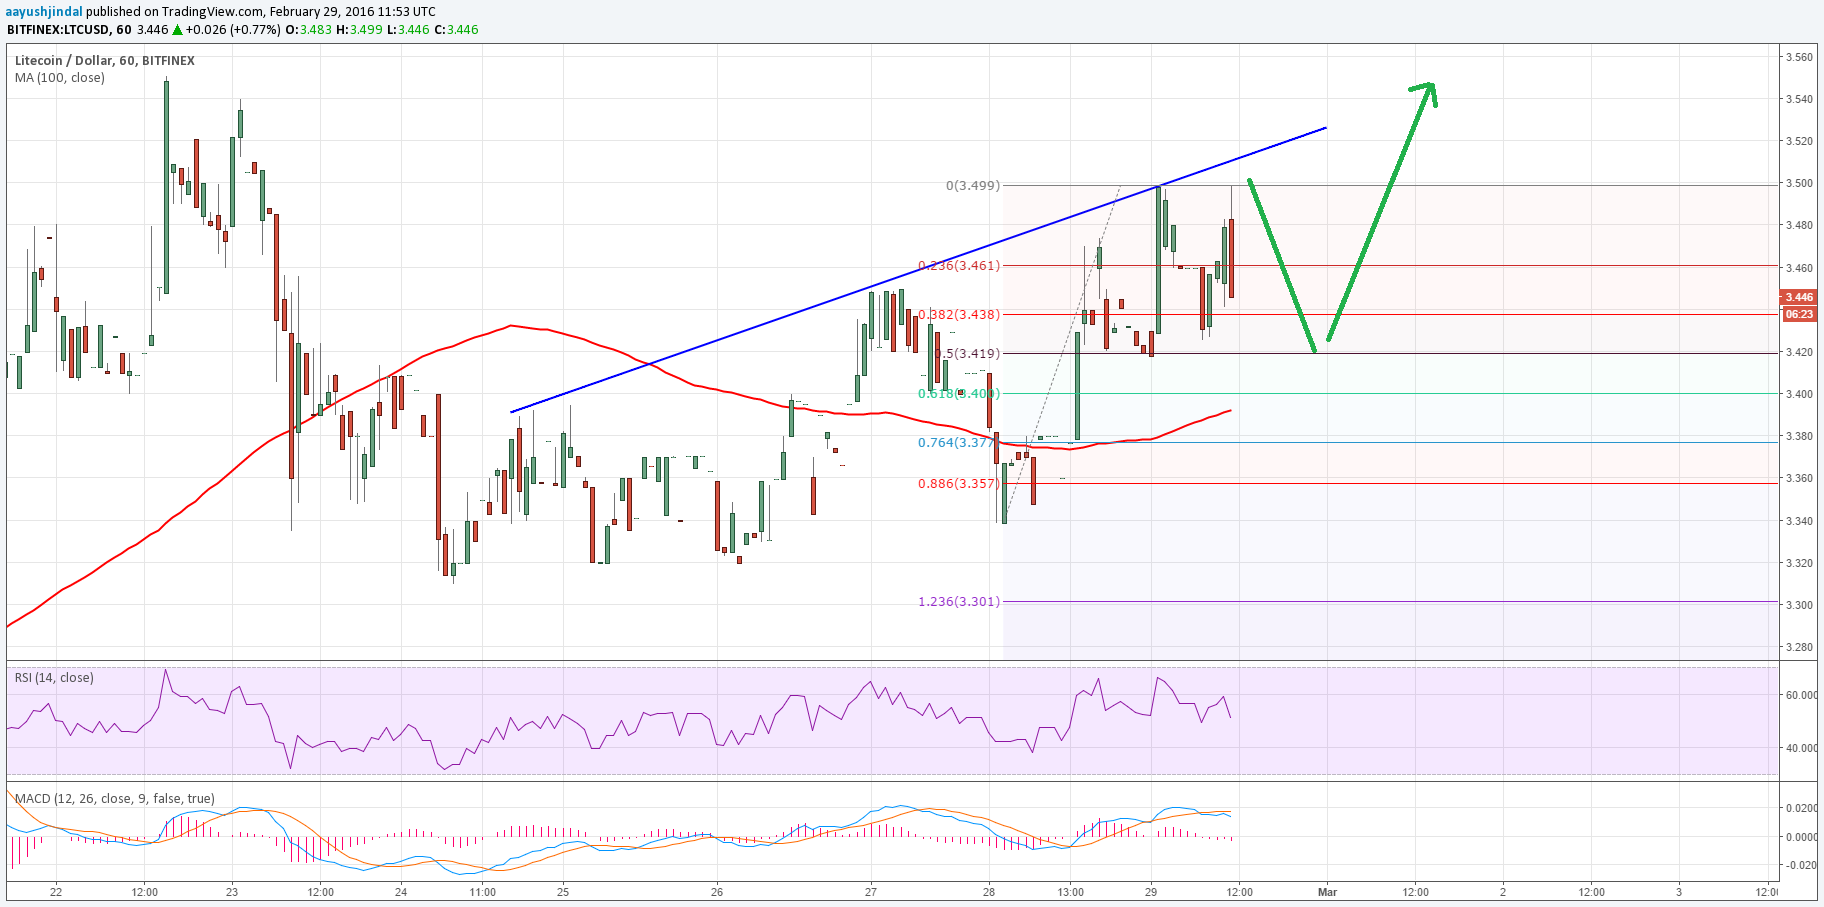 Litecoin Price Technical Analysis – Continues To Probe $3.50